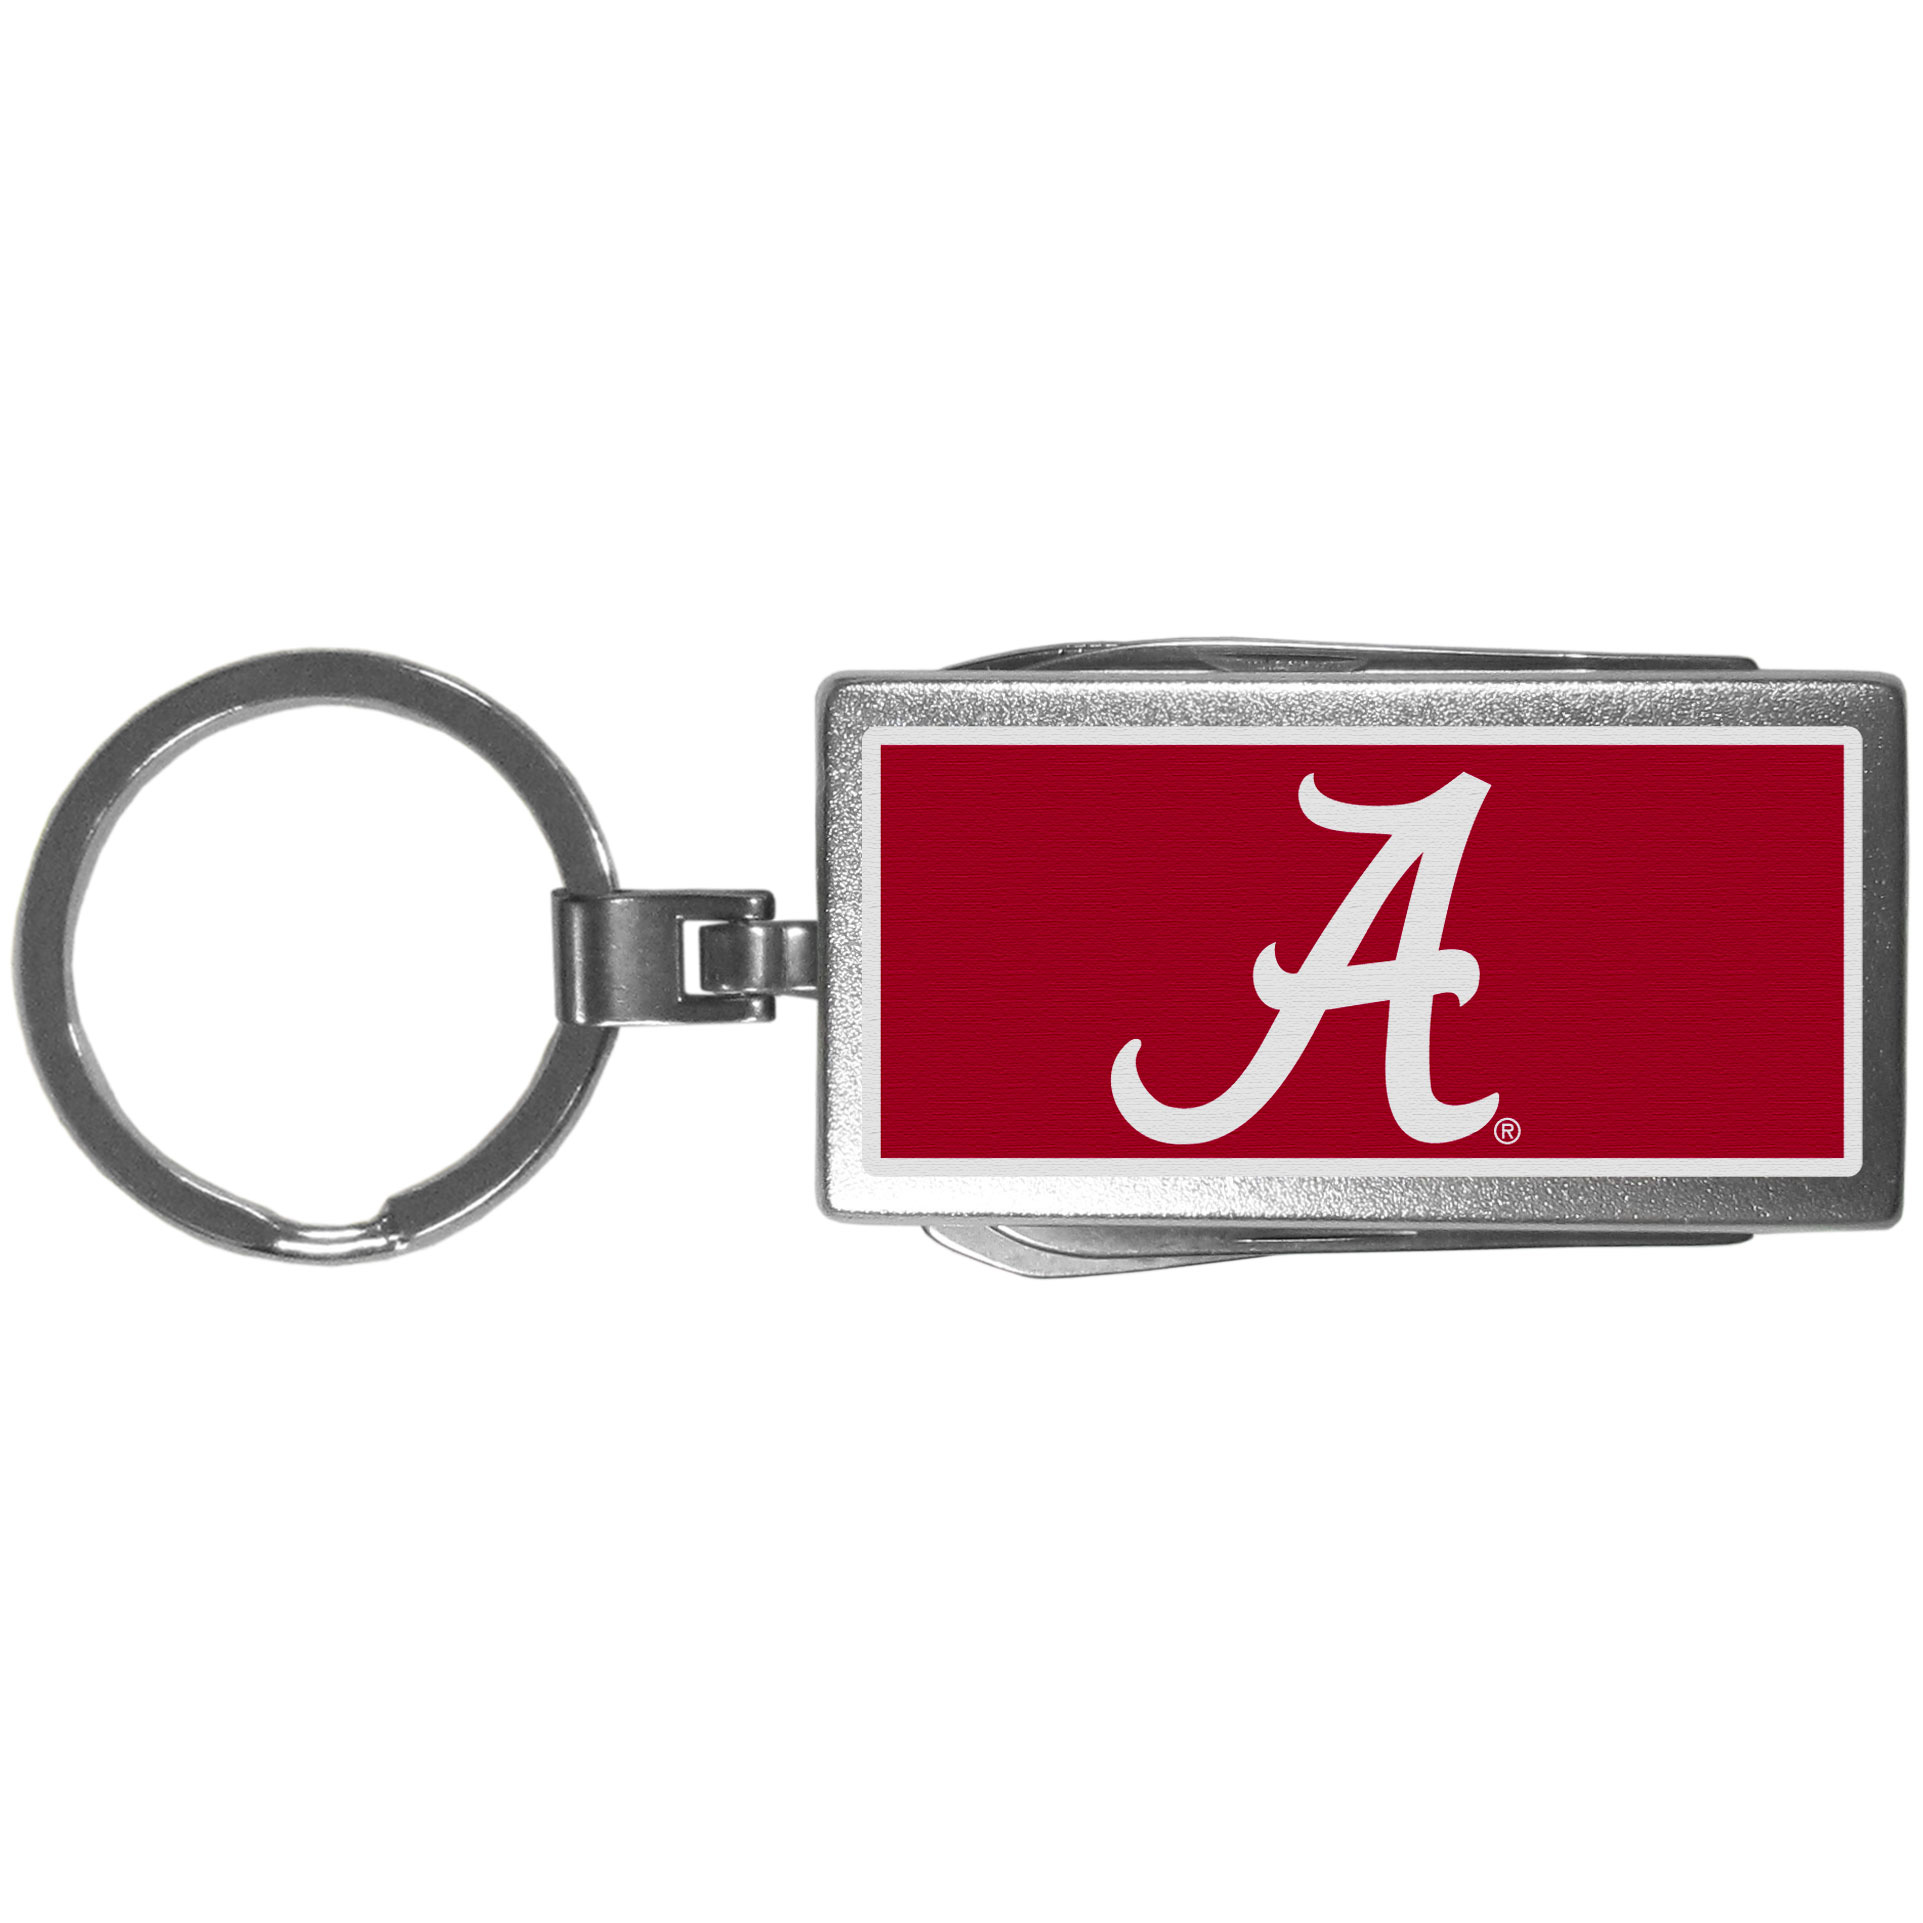 Alabama Crimson Tide Multi-tool Key Chain, Logo - Be the hero at the tailgate, camping, or on a Friday night with your Alabama Crimson Tide Multi-Tool Keychain which comes complete with bottle opener, scissors, knife, nail file and screw driver. Be it opening a package or a beverage Siskiyou's Multi-Tool Keychain goes wherever your keys do. The keychain hangs at 4 inches long when closed.